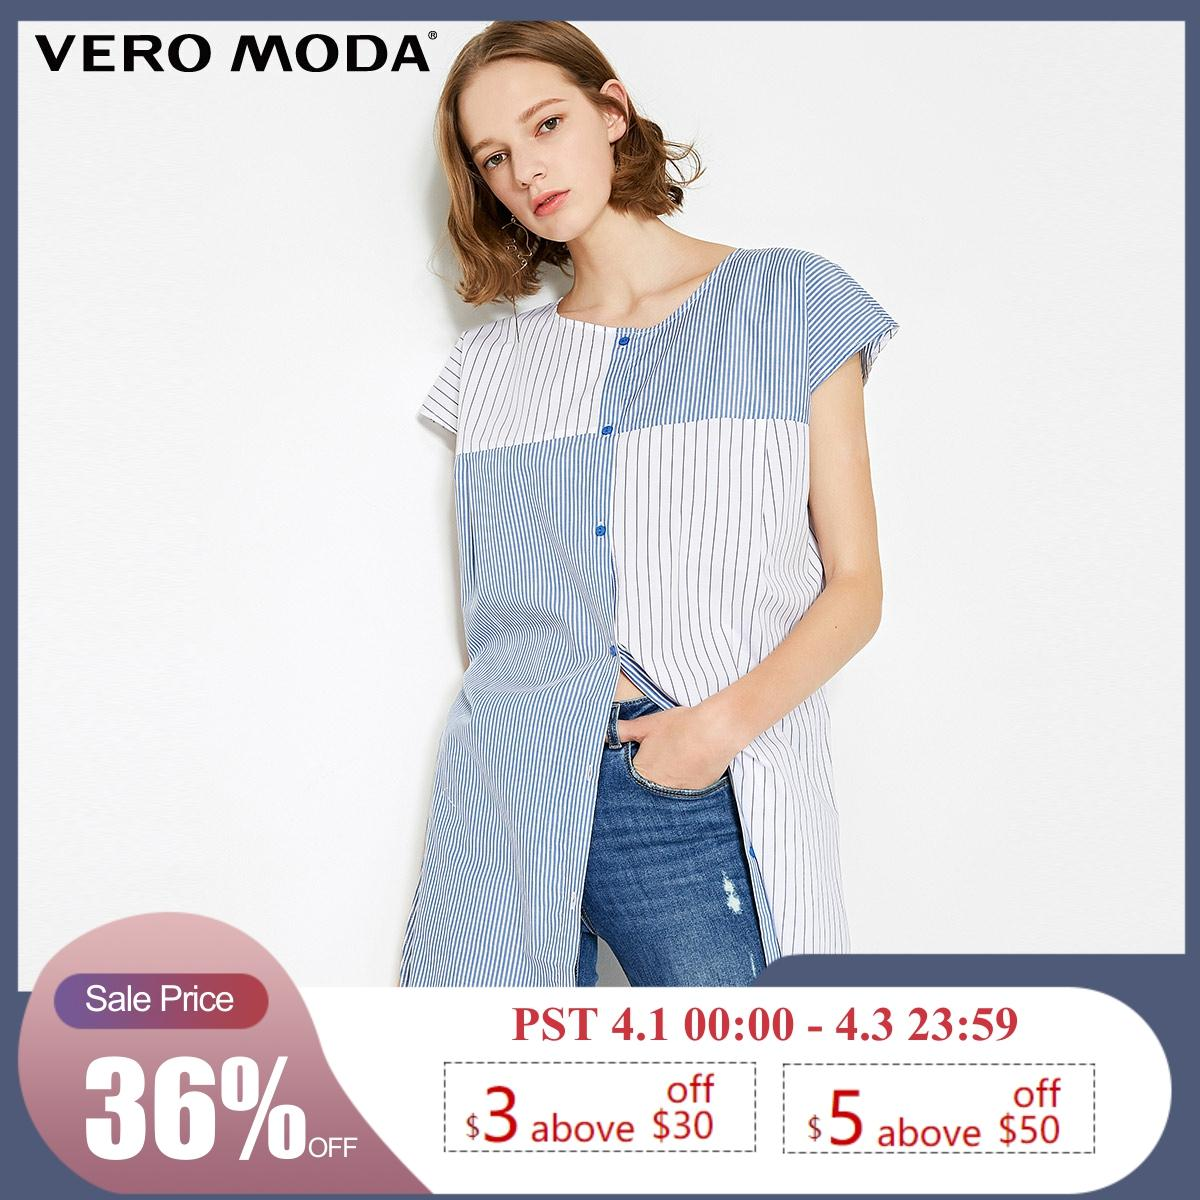 Vero Moda Women's High-low 100% Cotton Striped Long Shirt | 319241512